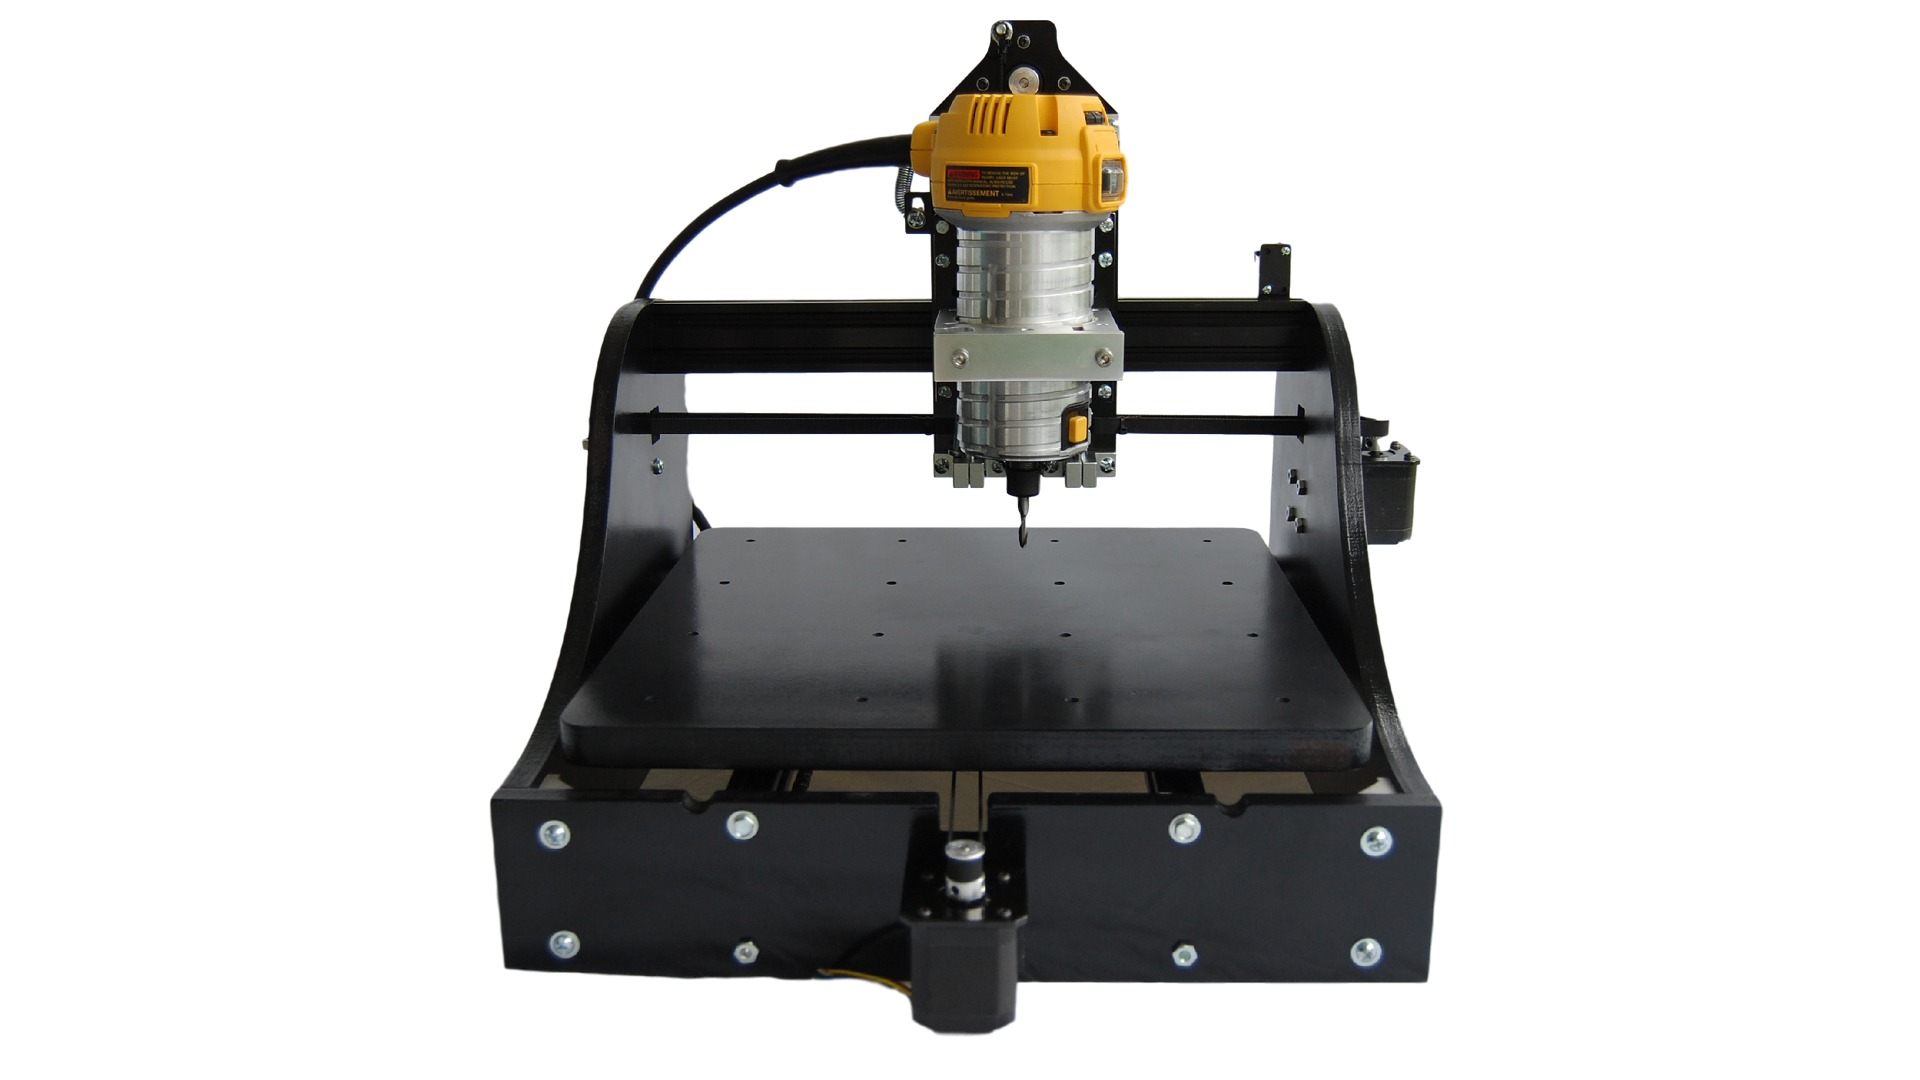 This Desktop CNC Machine Gets You Milling for Under $500